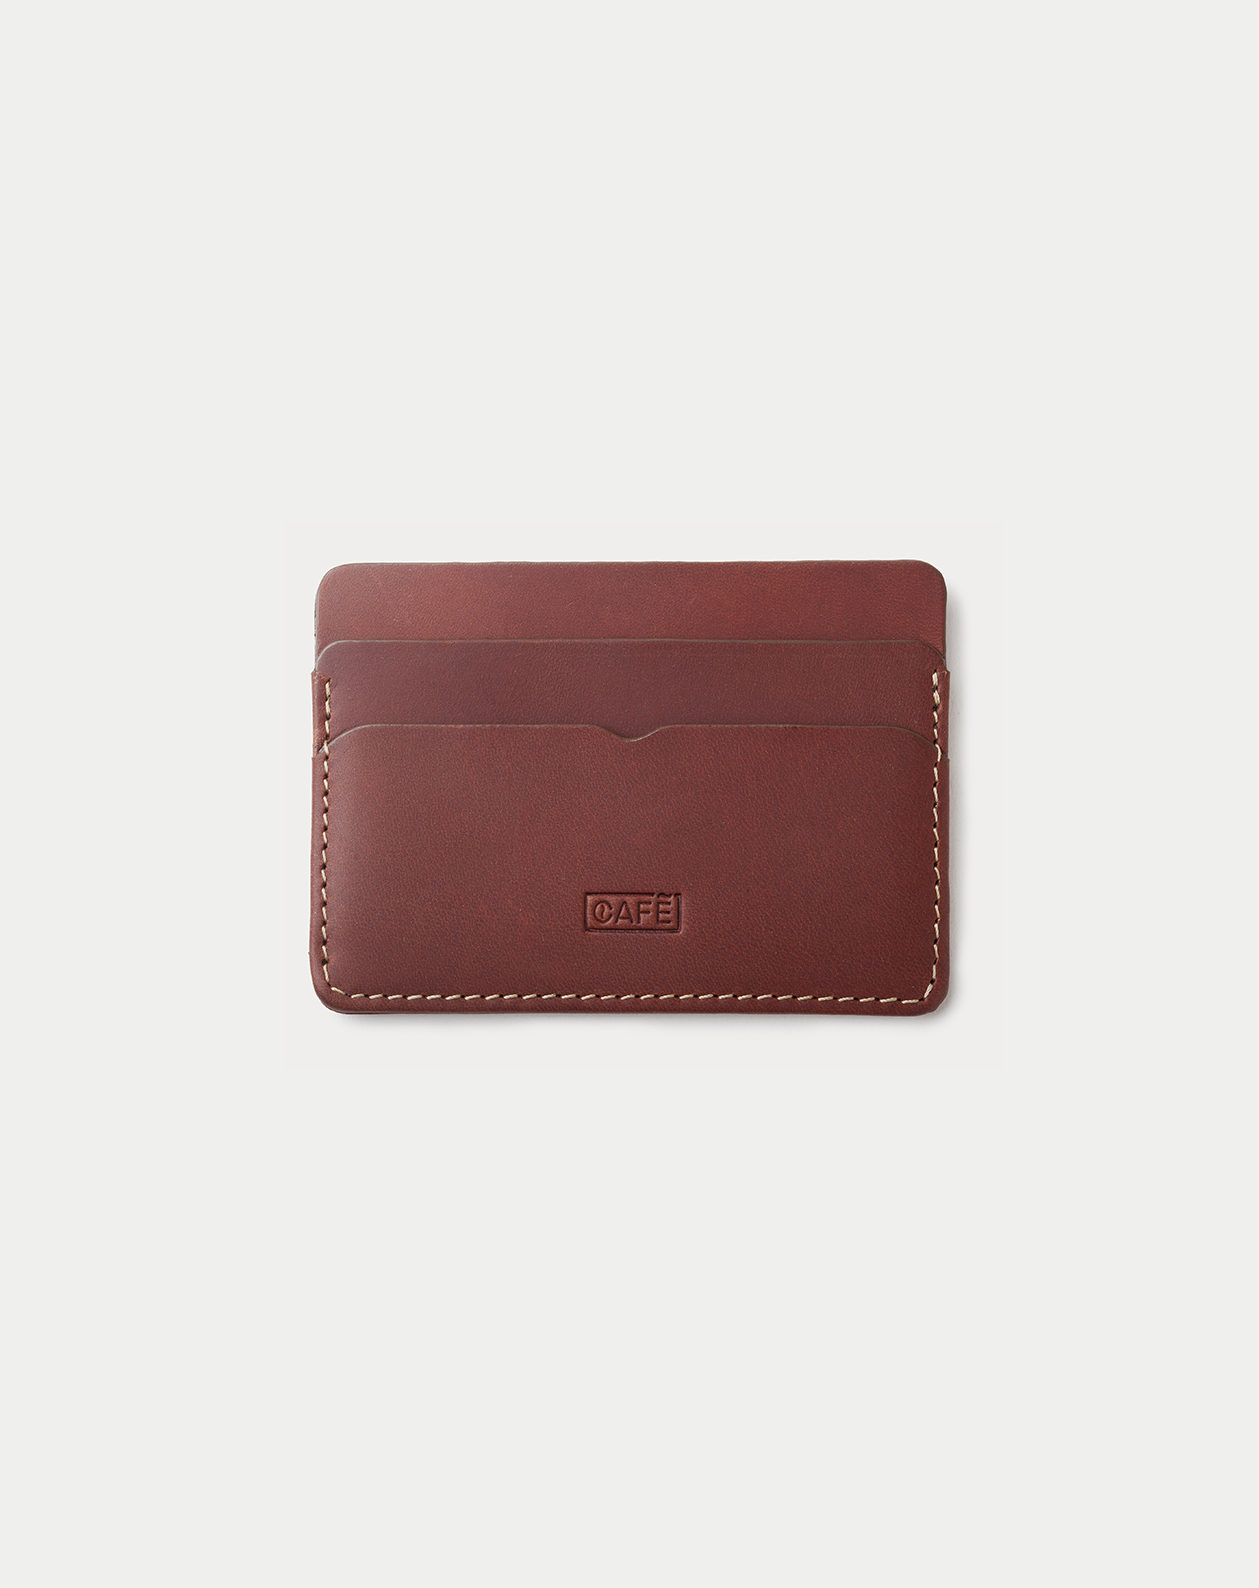 Leather Card Holder Panama + Roasted with five pockets. Tarjetero de piel Panama + Roasted con cinco compartimentos